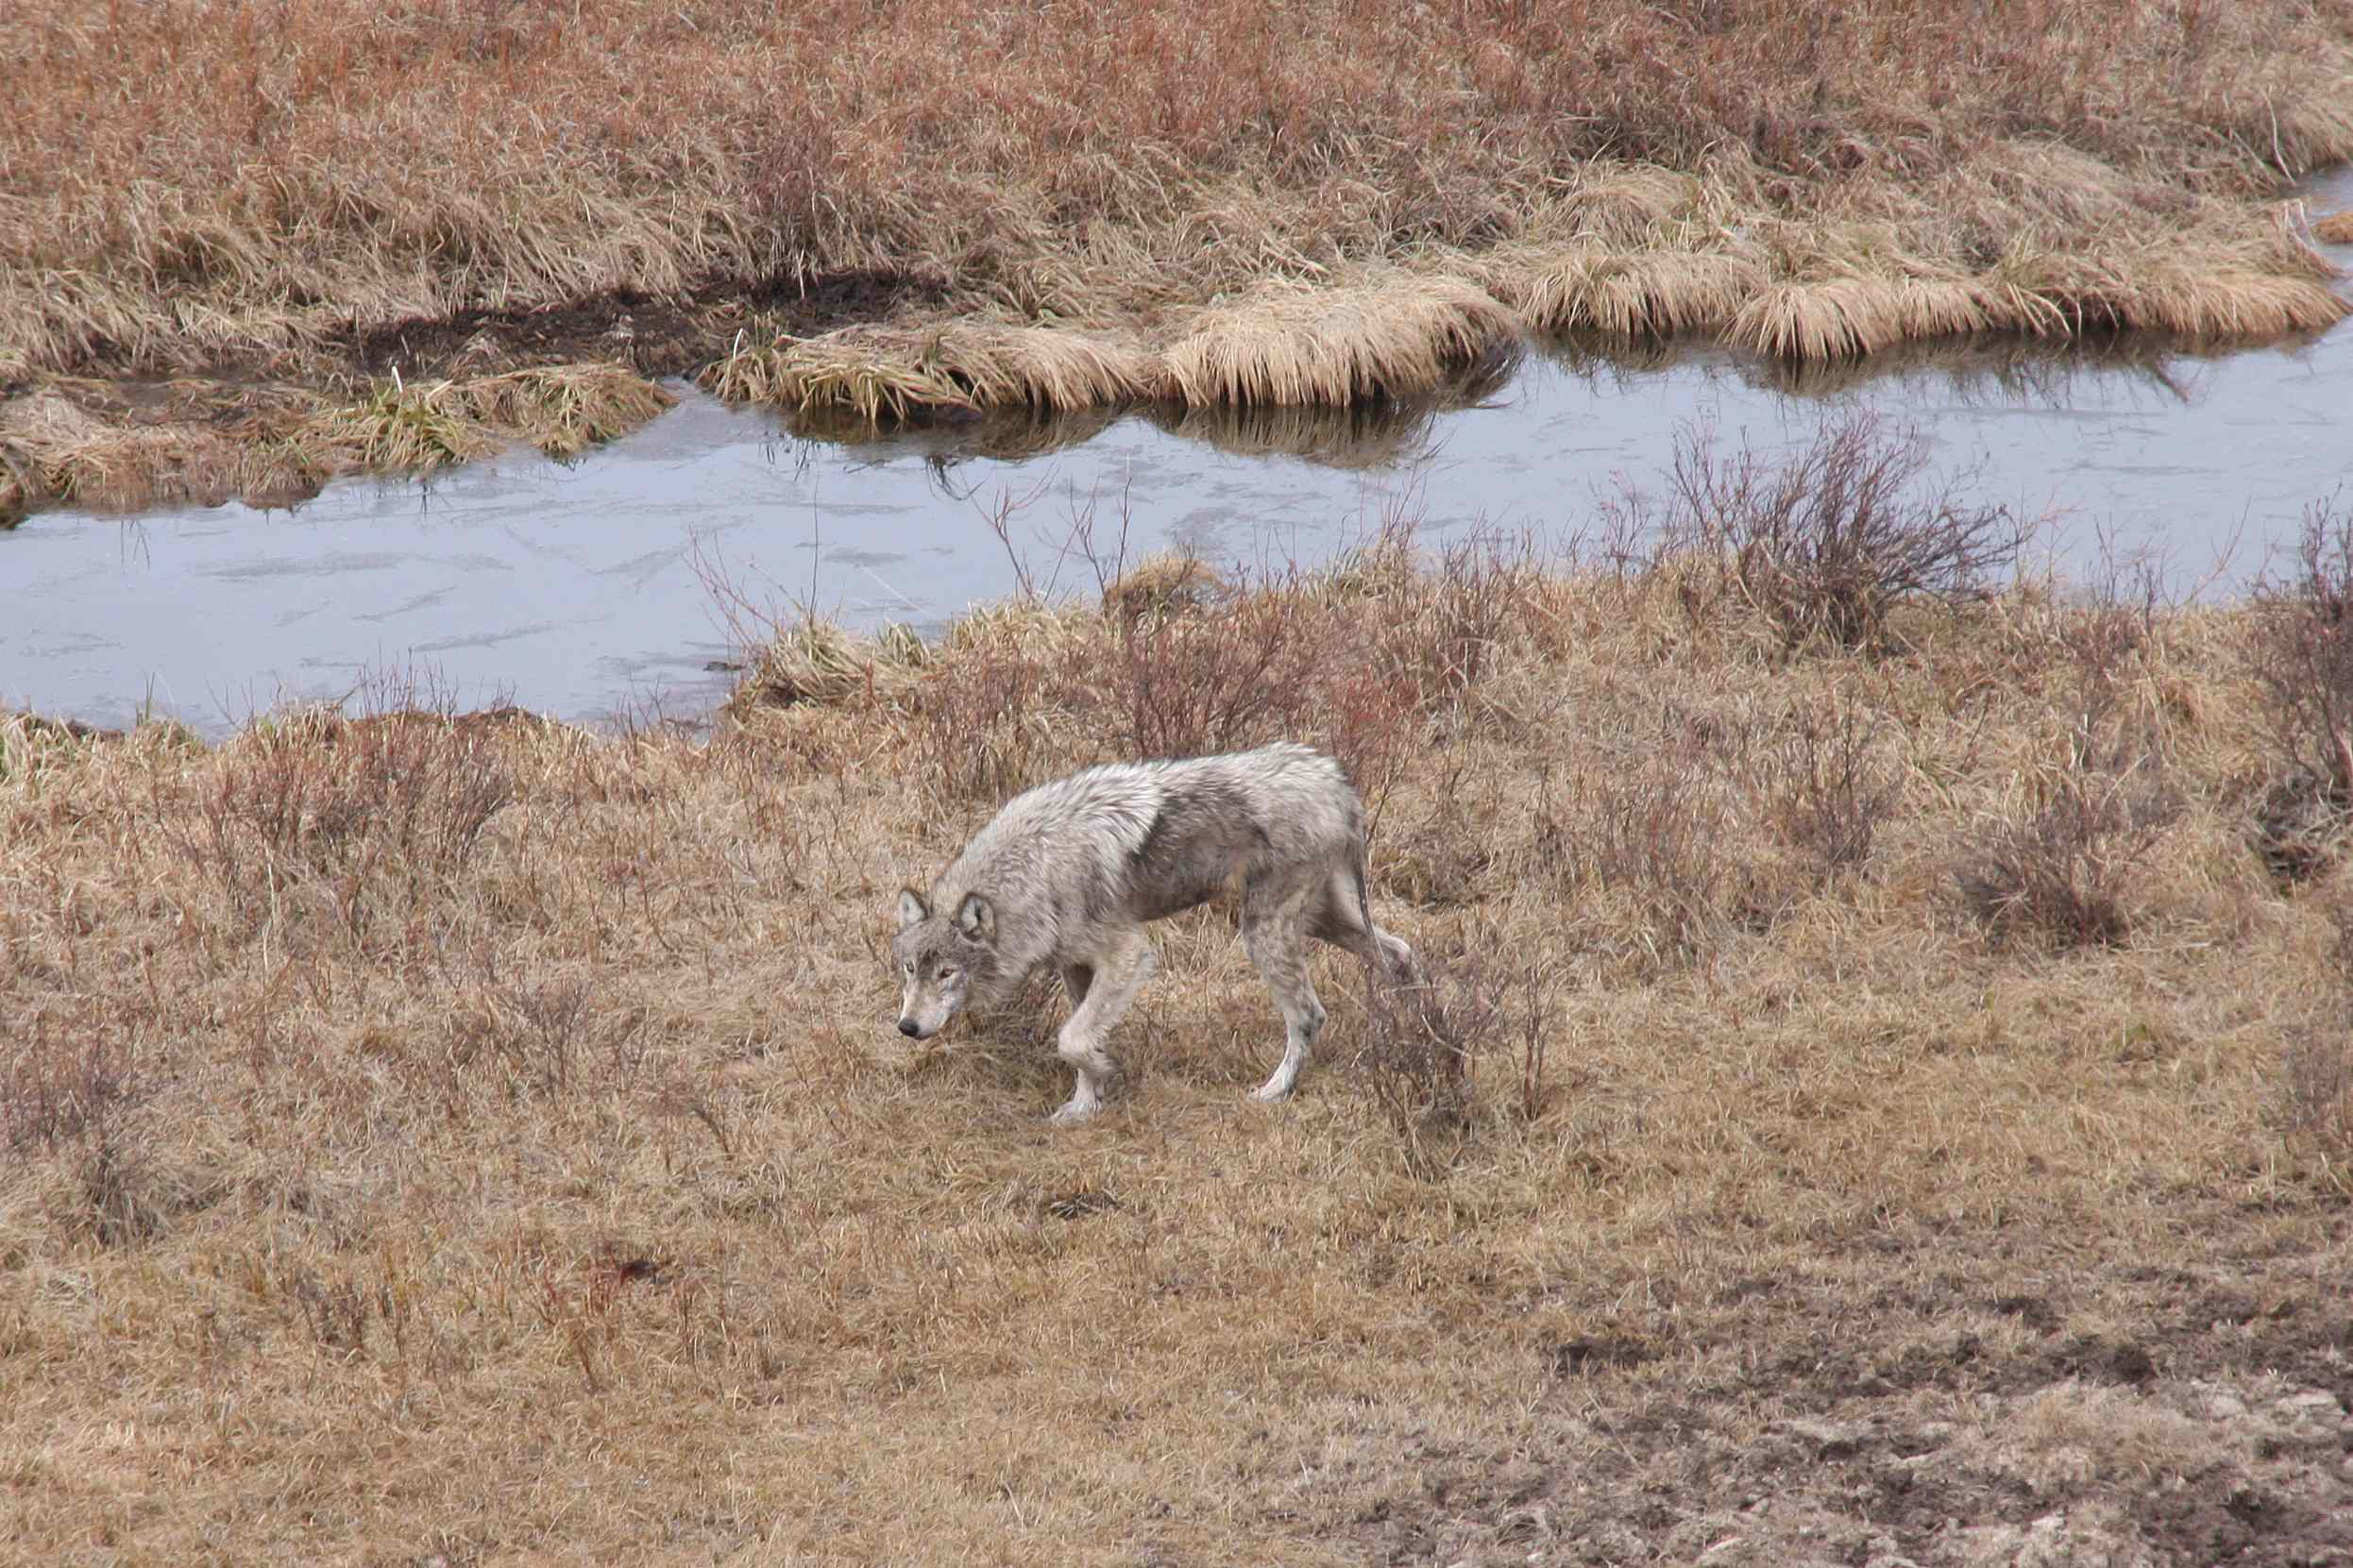 A Yellowstone wolf attacked by mange. Mange causes animals to lose fur, which can be deadly in the frigid Wyoming winters.